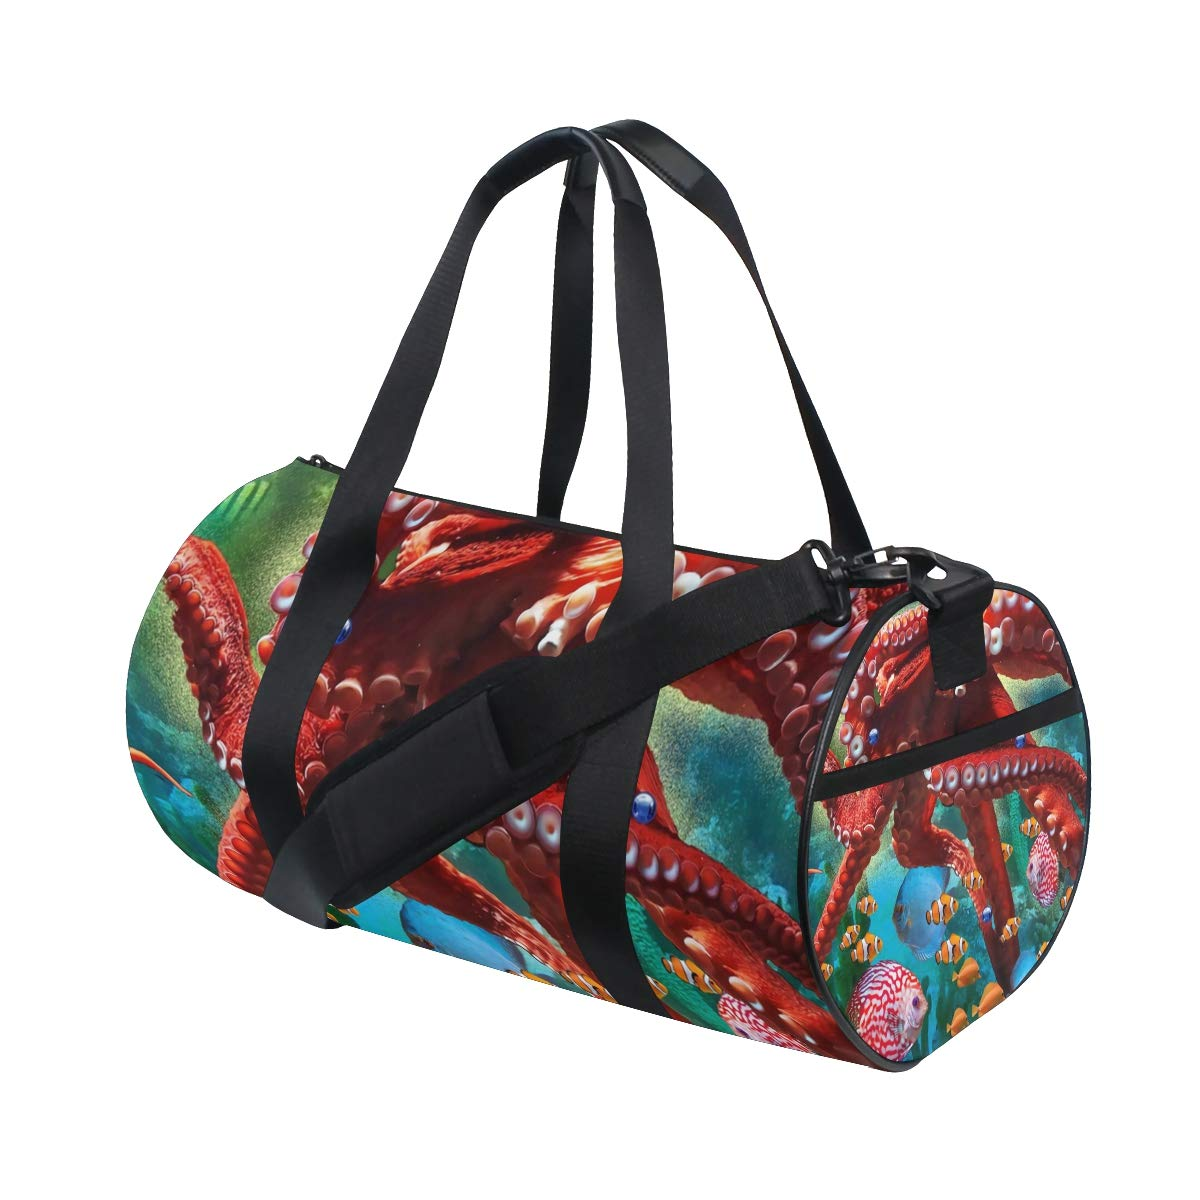 Travel Weekender Duffel Bag for Man and Woman Gym Bag with Fantasy Seascapes Octopus Nautical Print